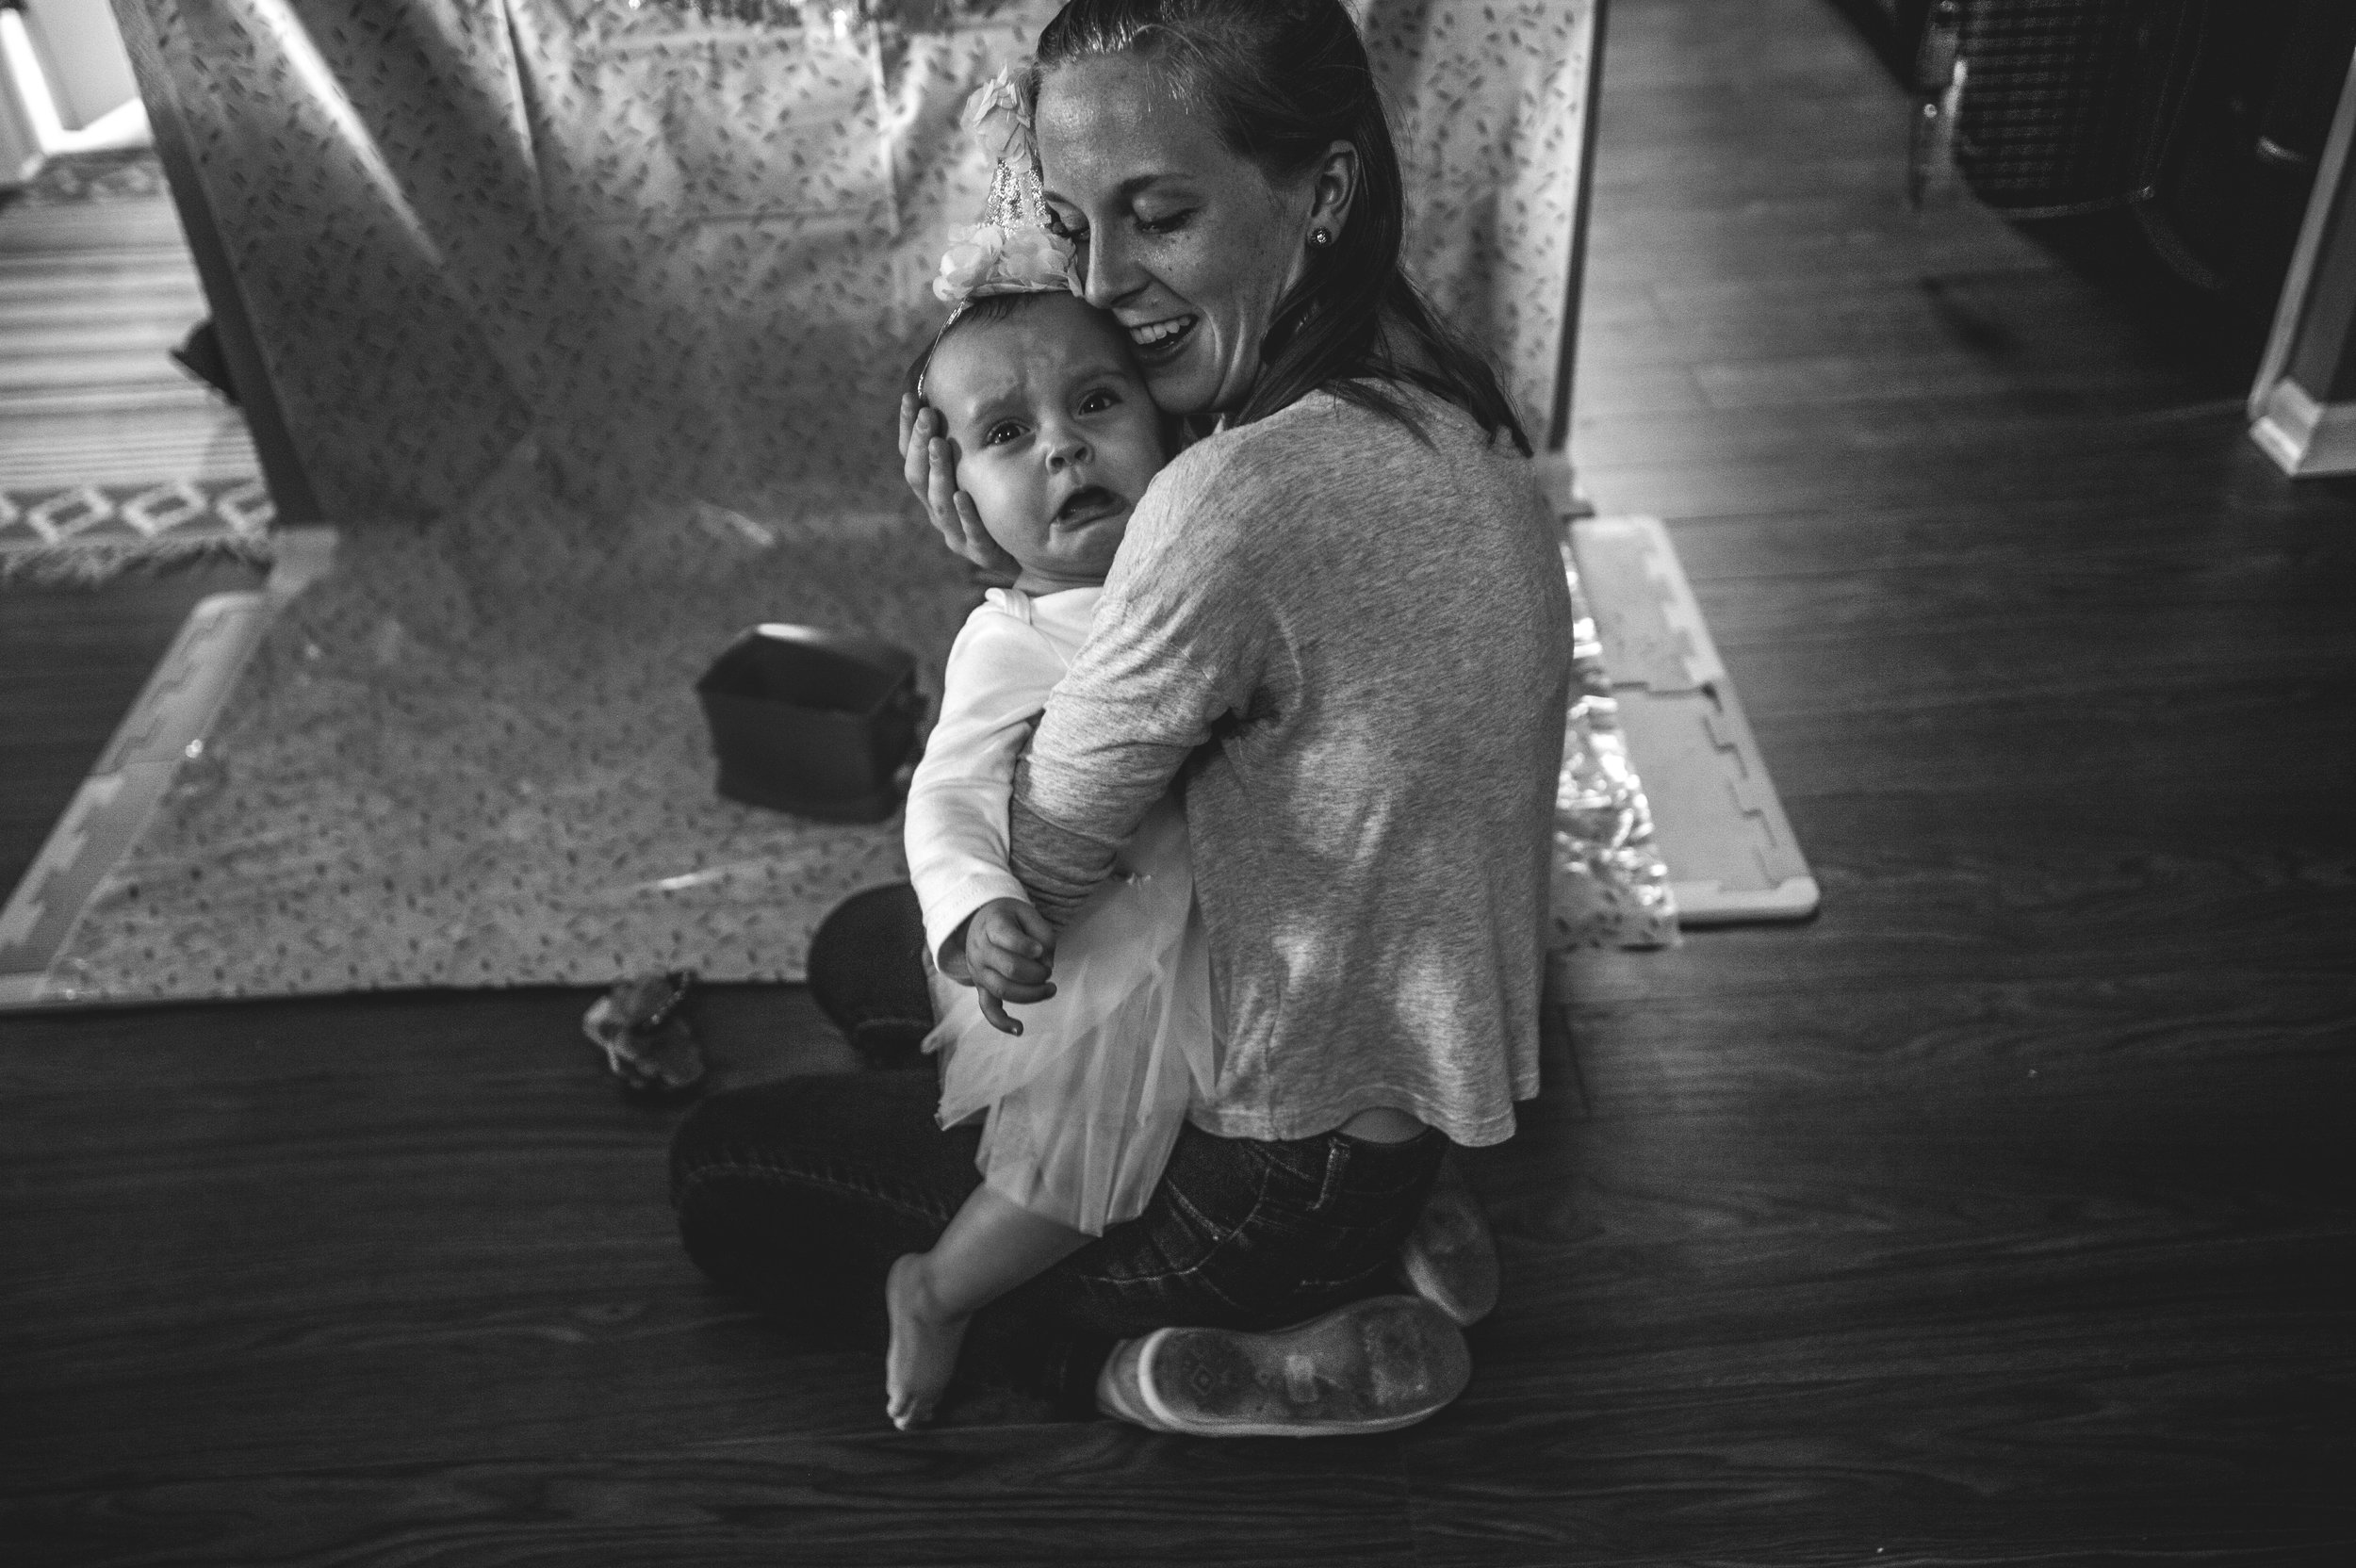 Little girl wearing a tutu and party hat crying in a woman's arms as the woman smiles down on her, black and white, Aurora, Colorado